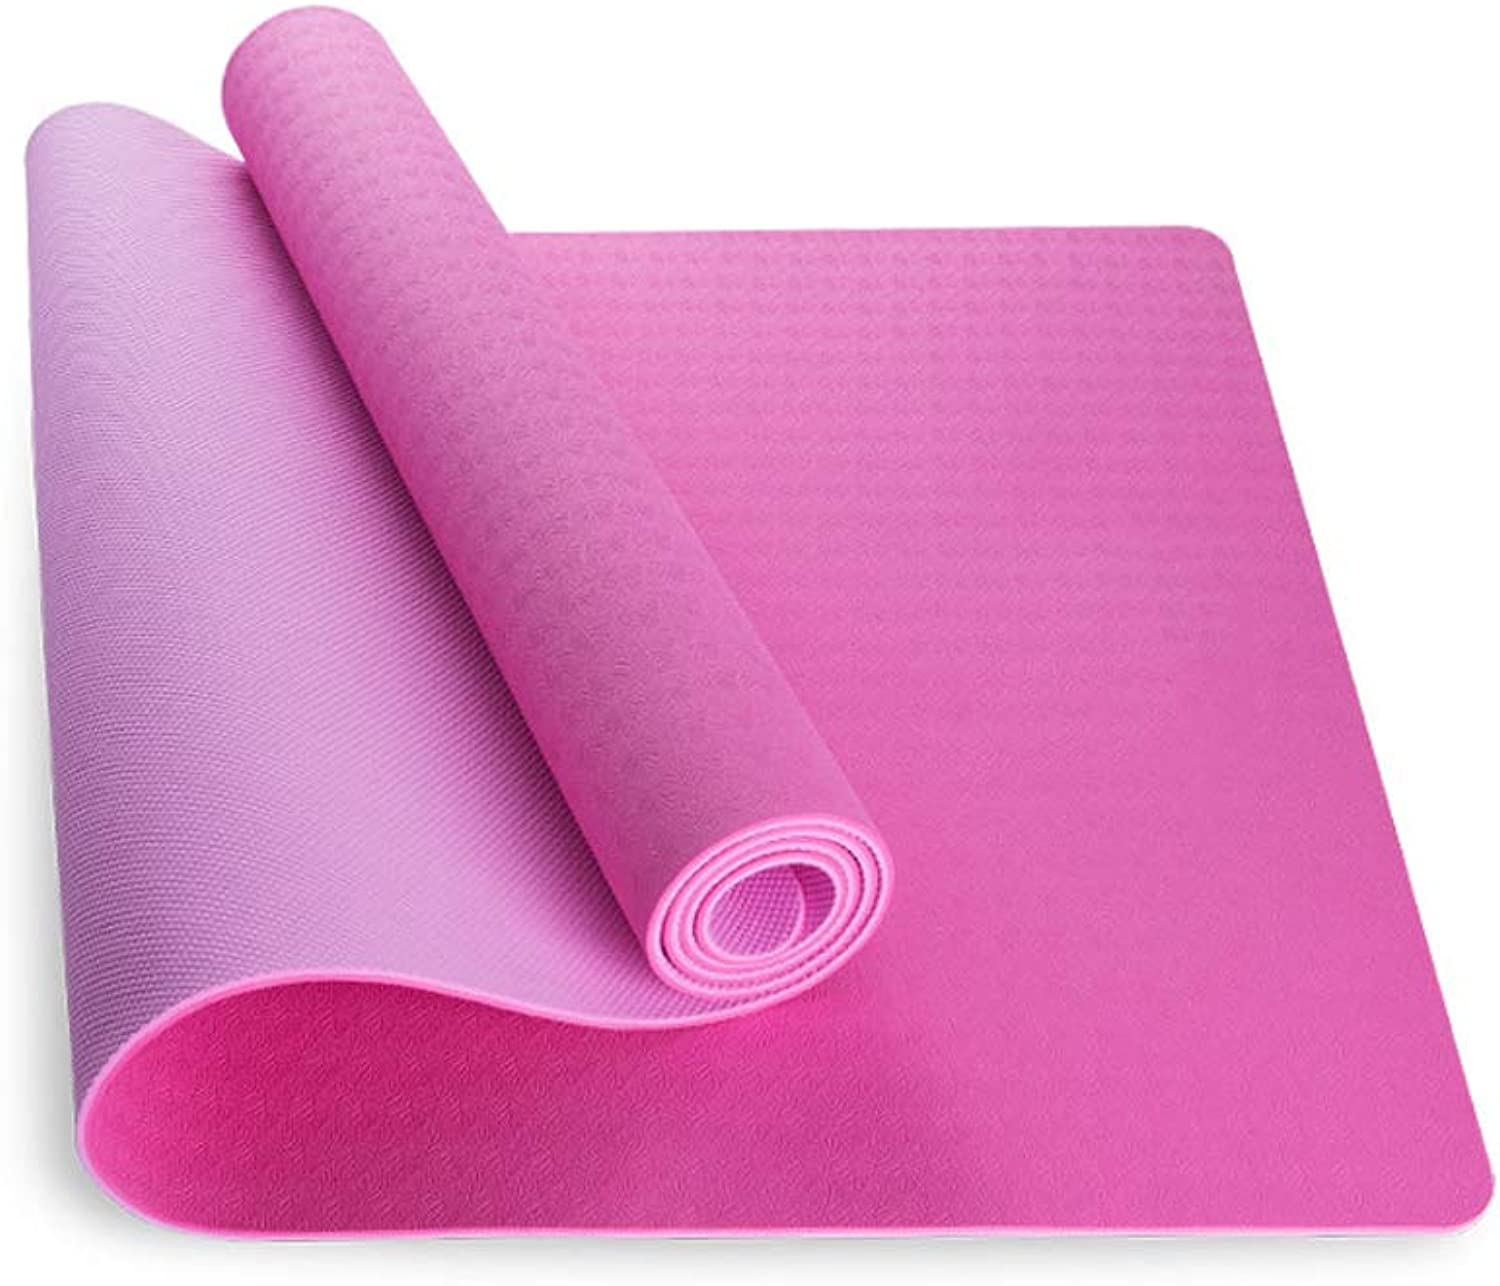 Jia He Yoga Matte Yoga-Matte - Anfnger Yoga Fitness Pilates Multi-Funktions-Anti-Rutsch-Unscented Yogamatte [sechs Farben Optional] Dicke 6 Mm